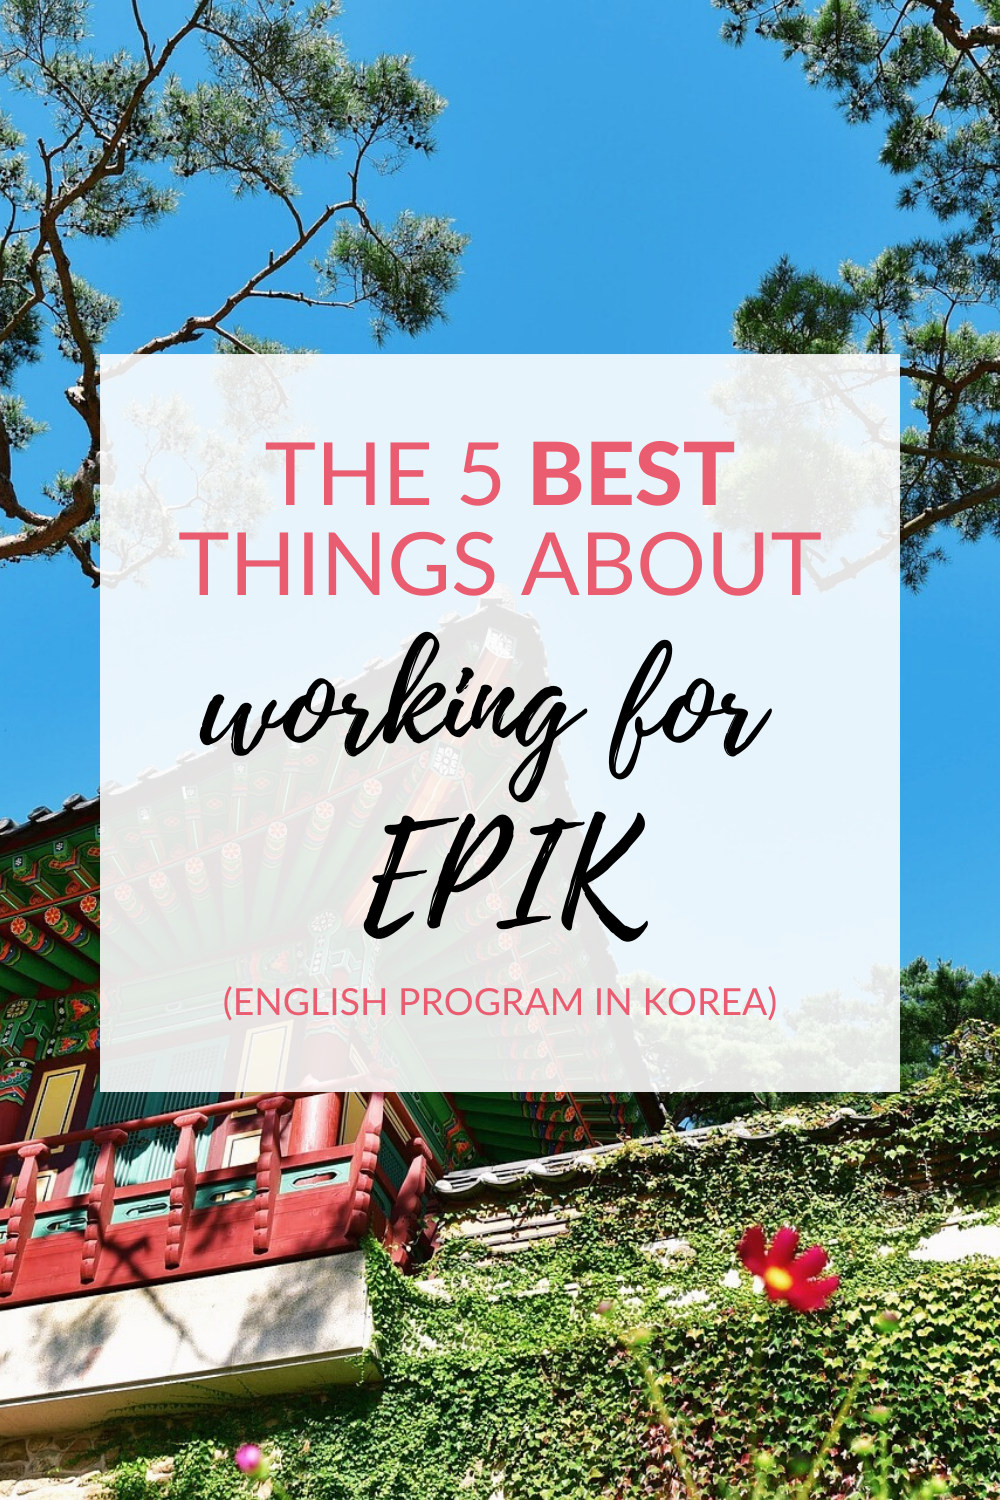 The 5 best things about working for EPIK